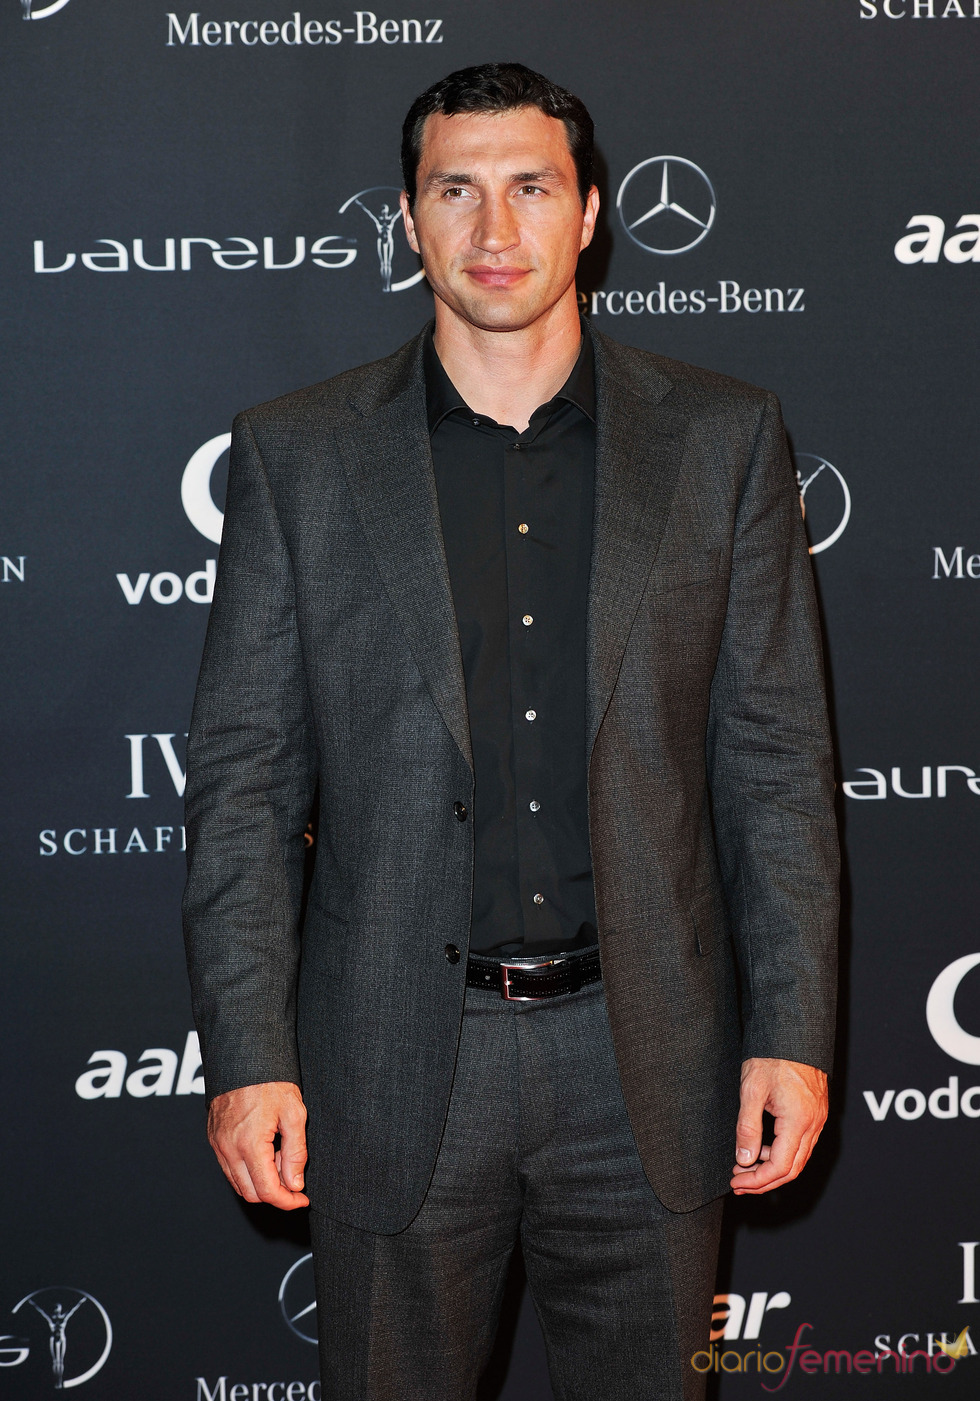 El boxeador Vladimir Klitschko en la Laureus Welcome Party